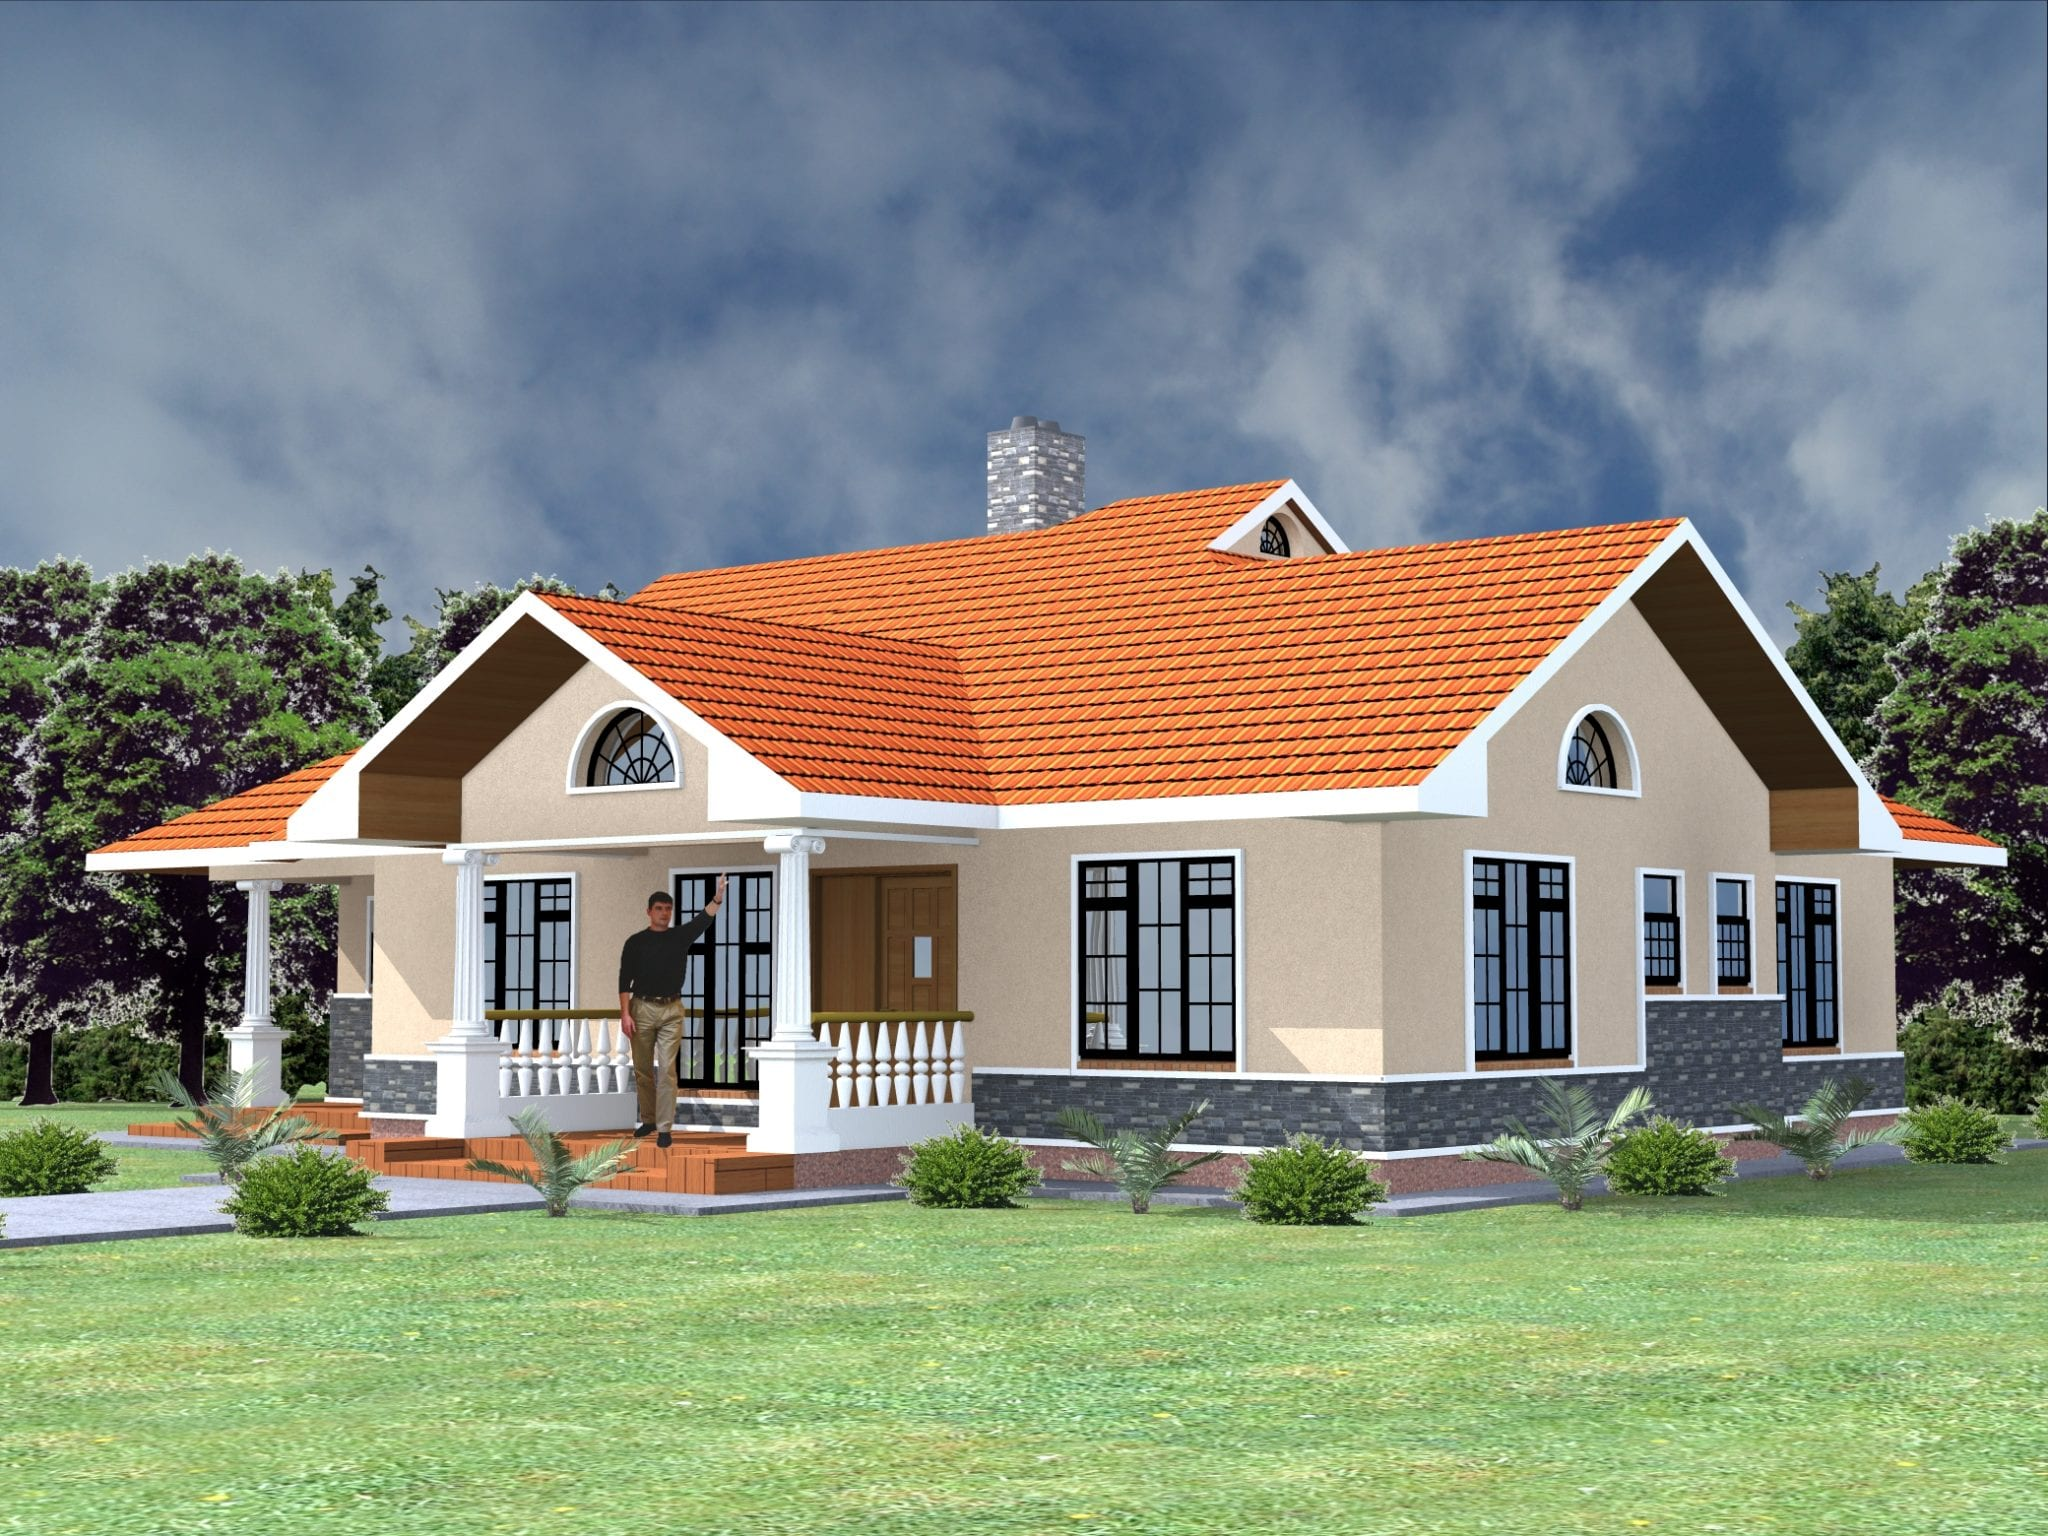 Best Kenyan Bungalow Roof Designs - Modern House